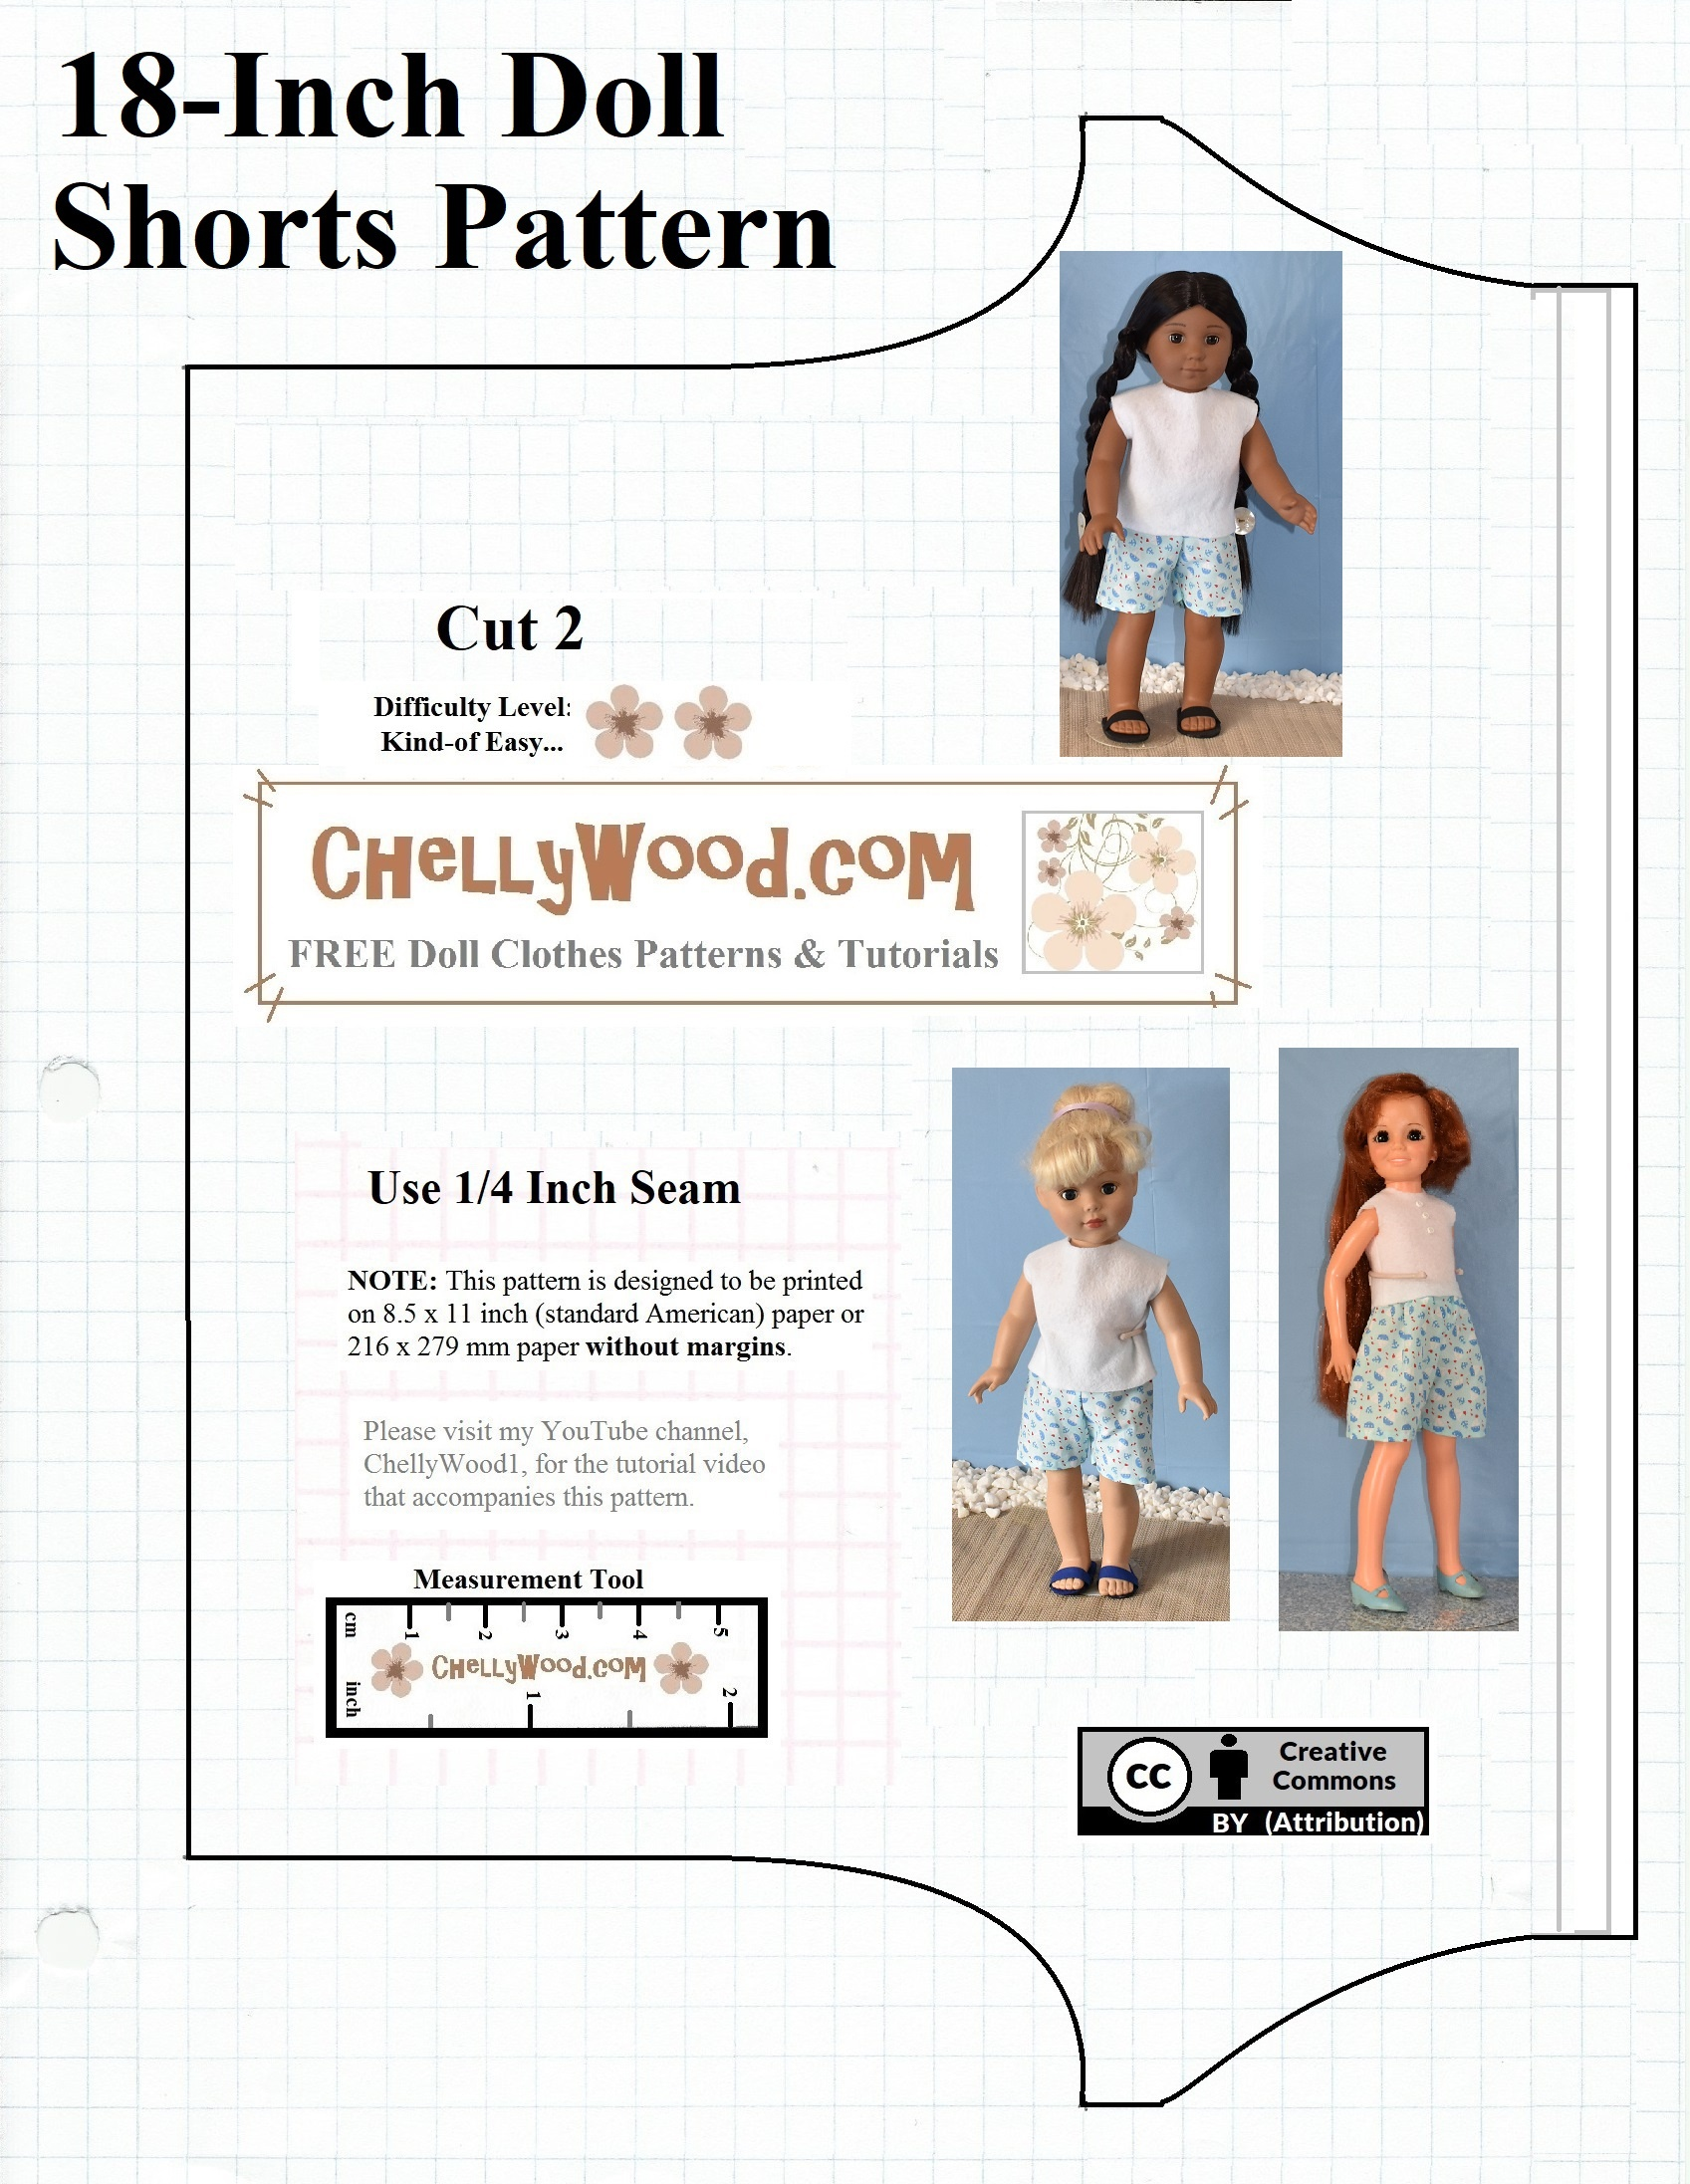 Free Printable Shorts #patterns For #americangirl And Other 18-Inch - Free Printable Doll Clothes Patterns For 18 Inch Dolls